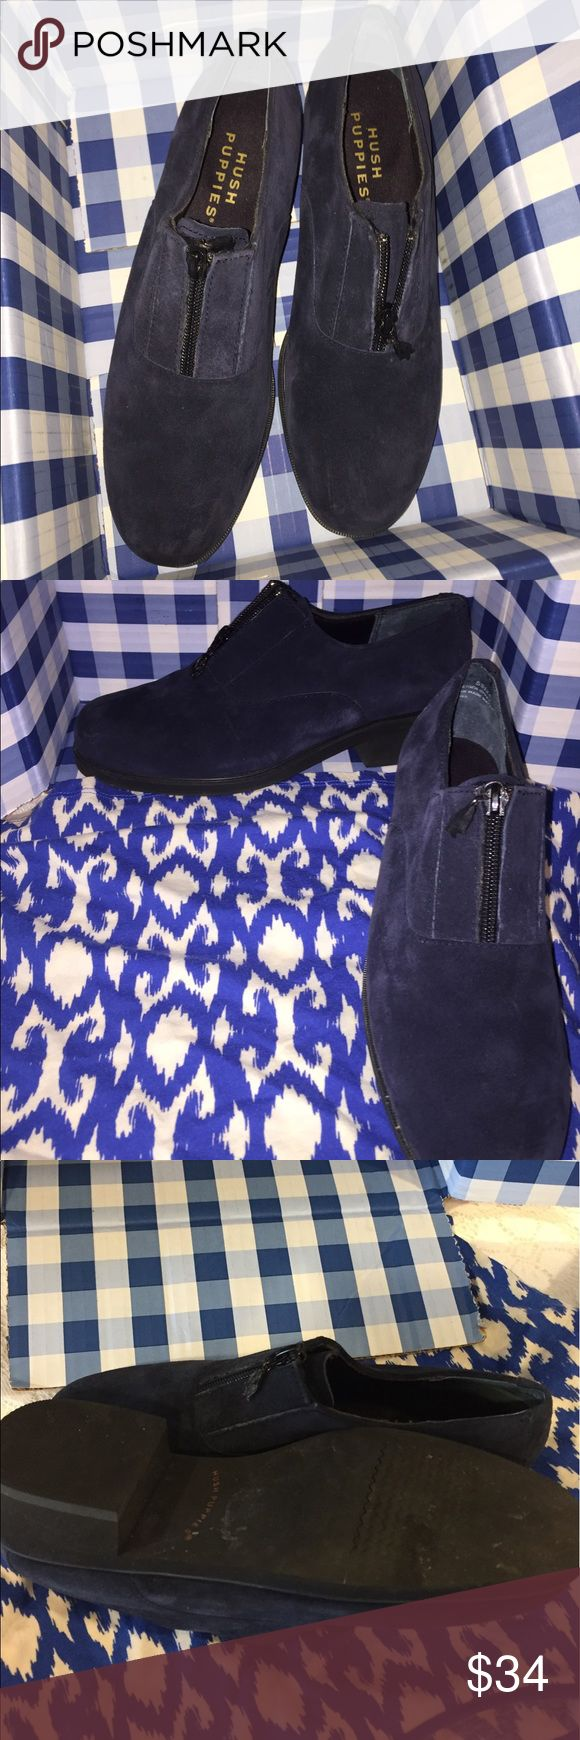 Blue Suede Shoes Hush Puppies Shoes in Blue Suede beautiful with a puppy on the zipper so cute! Great Brand slide on and zip up.  Sz. 8 1/2 Like New!!!! Black soft soles extra comfort. They are like a bootie. Hush Puppies Shoes Ankle Boots & Booties